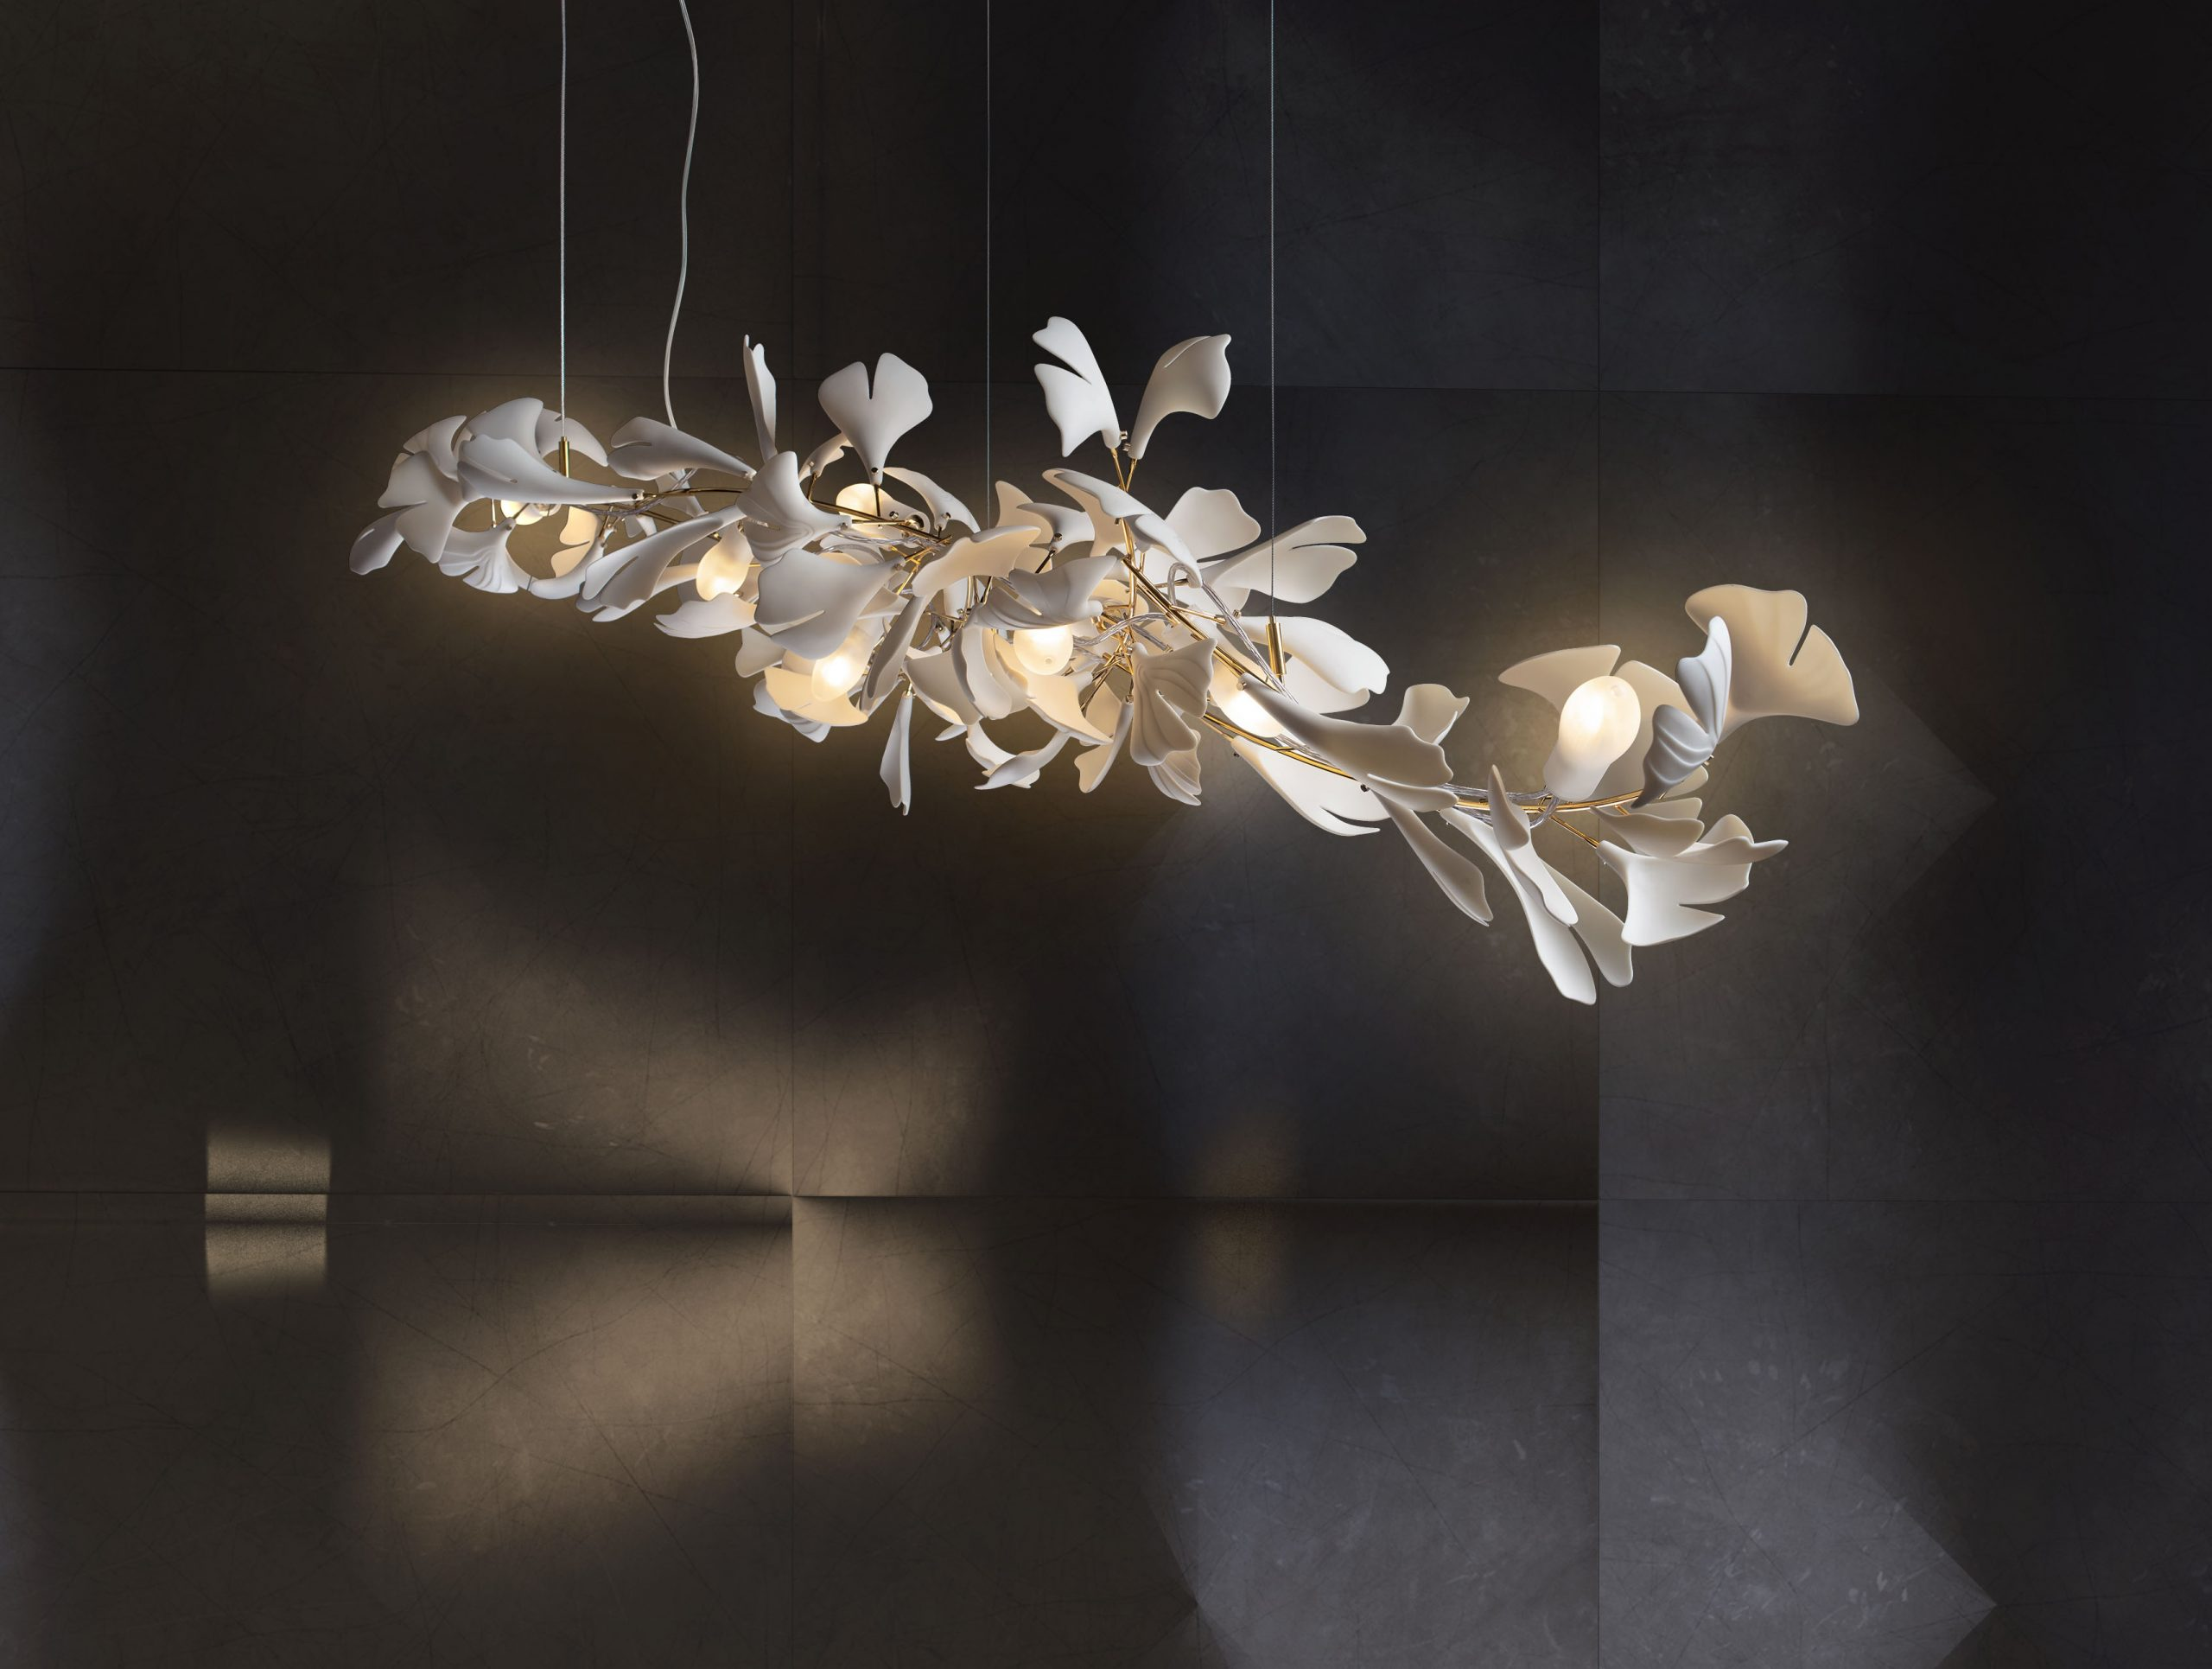 Bespoke Light sculpture Gingko 73